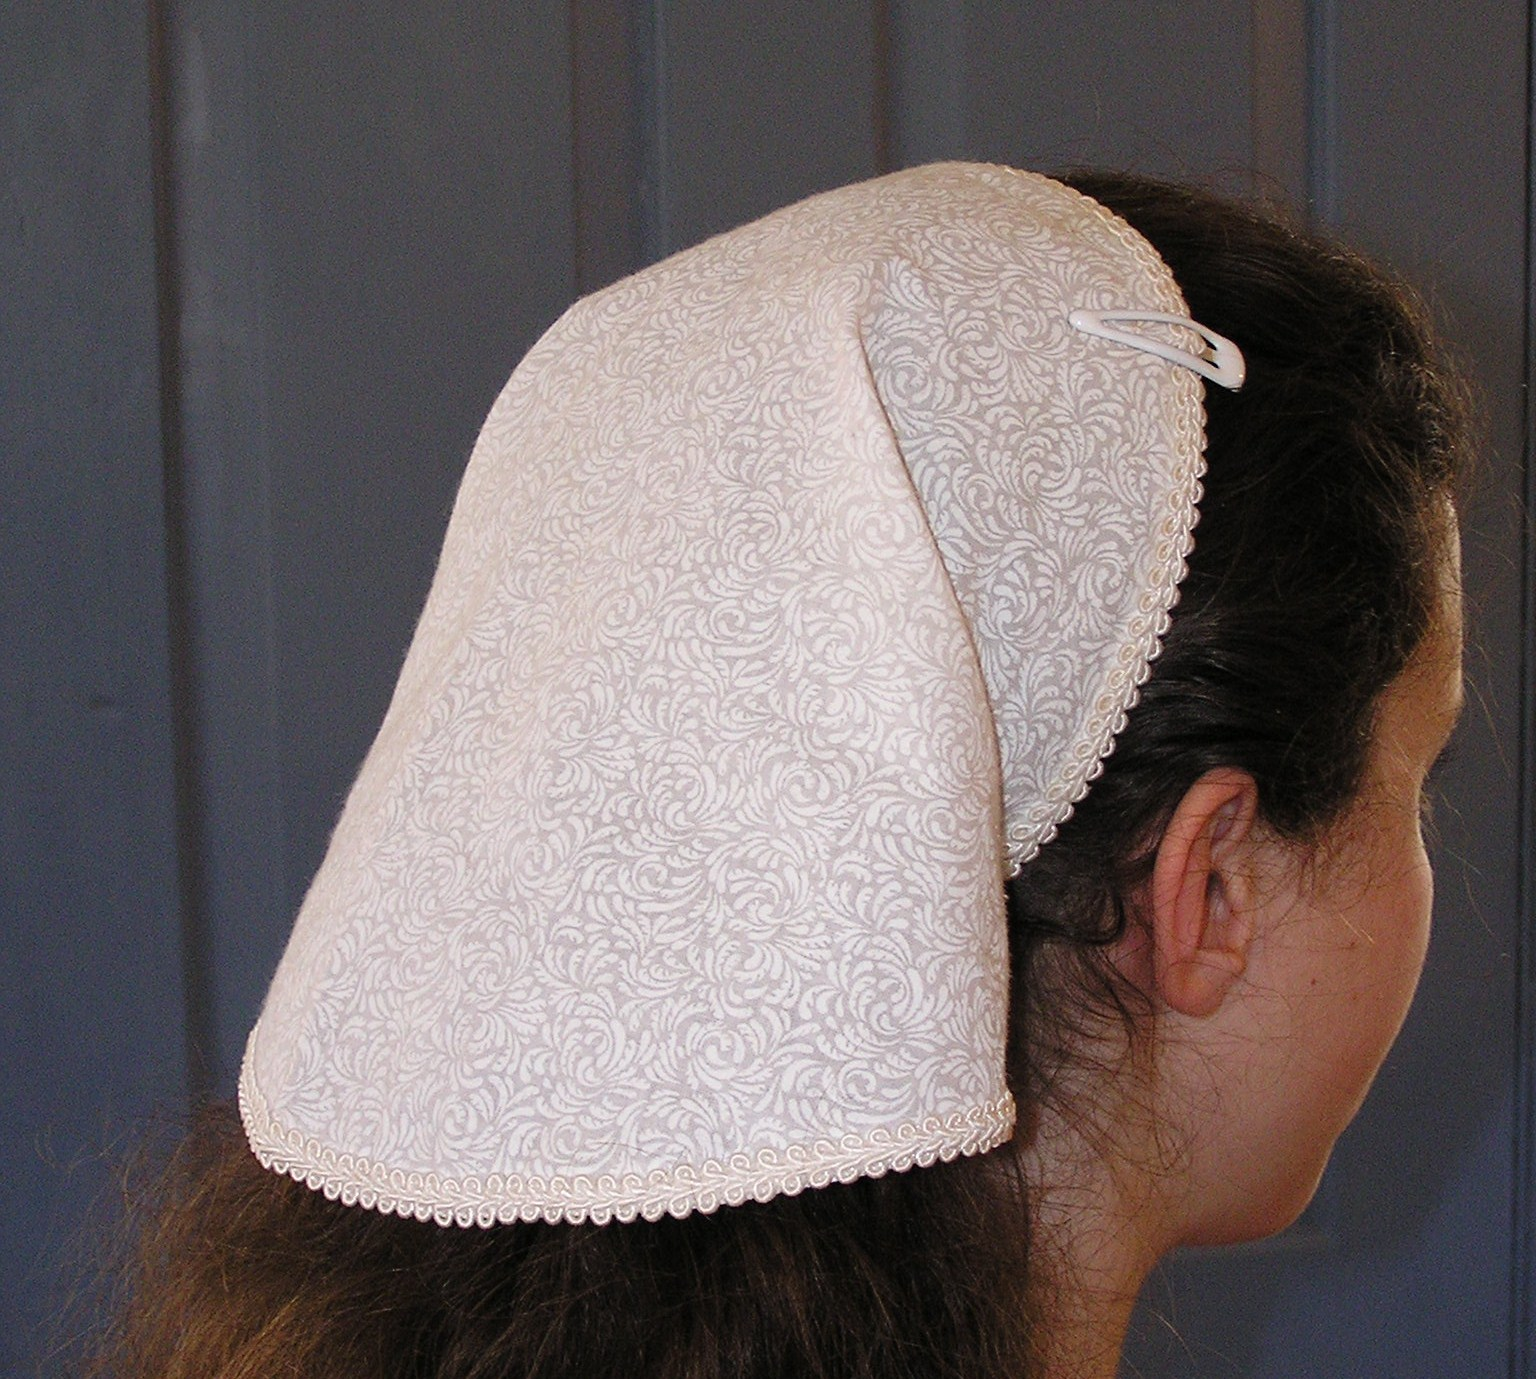 A girl with a head covering